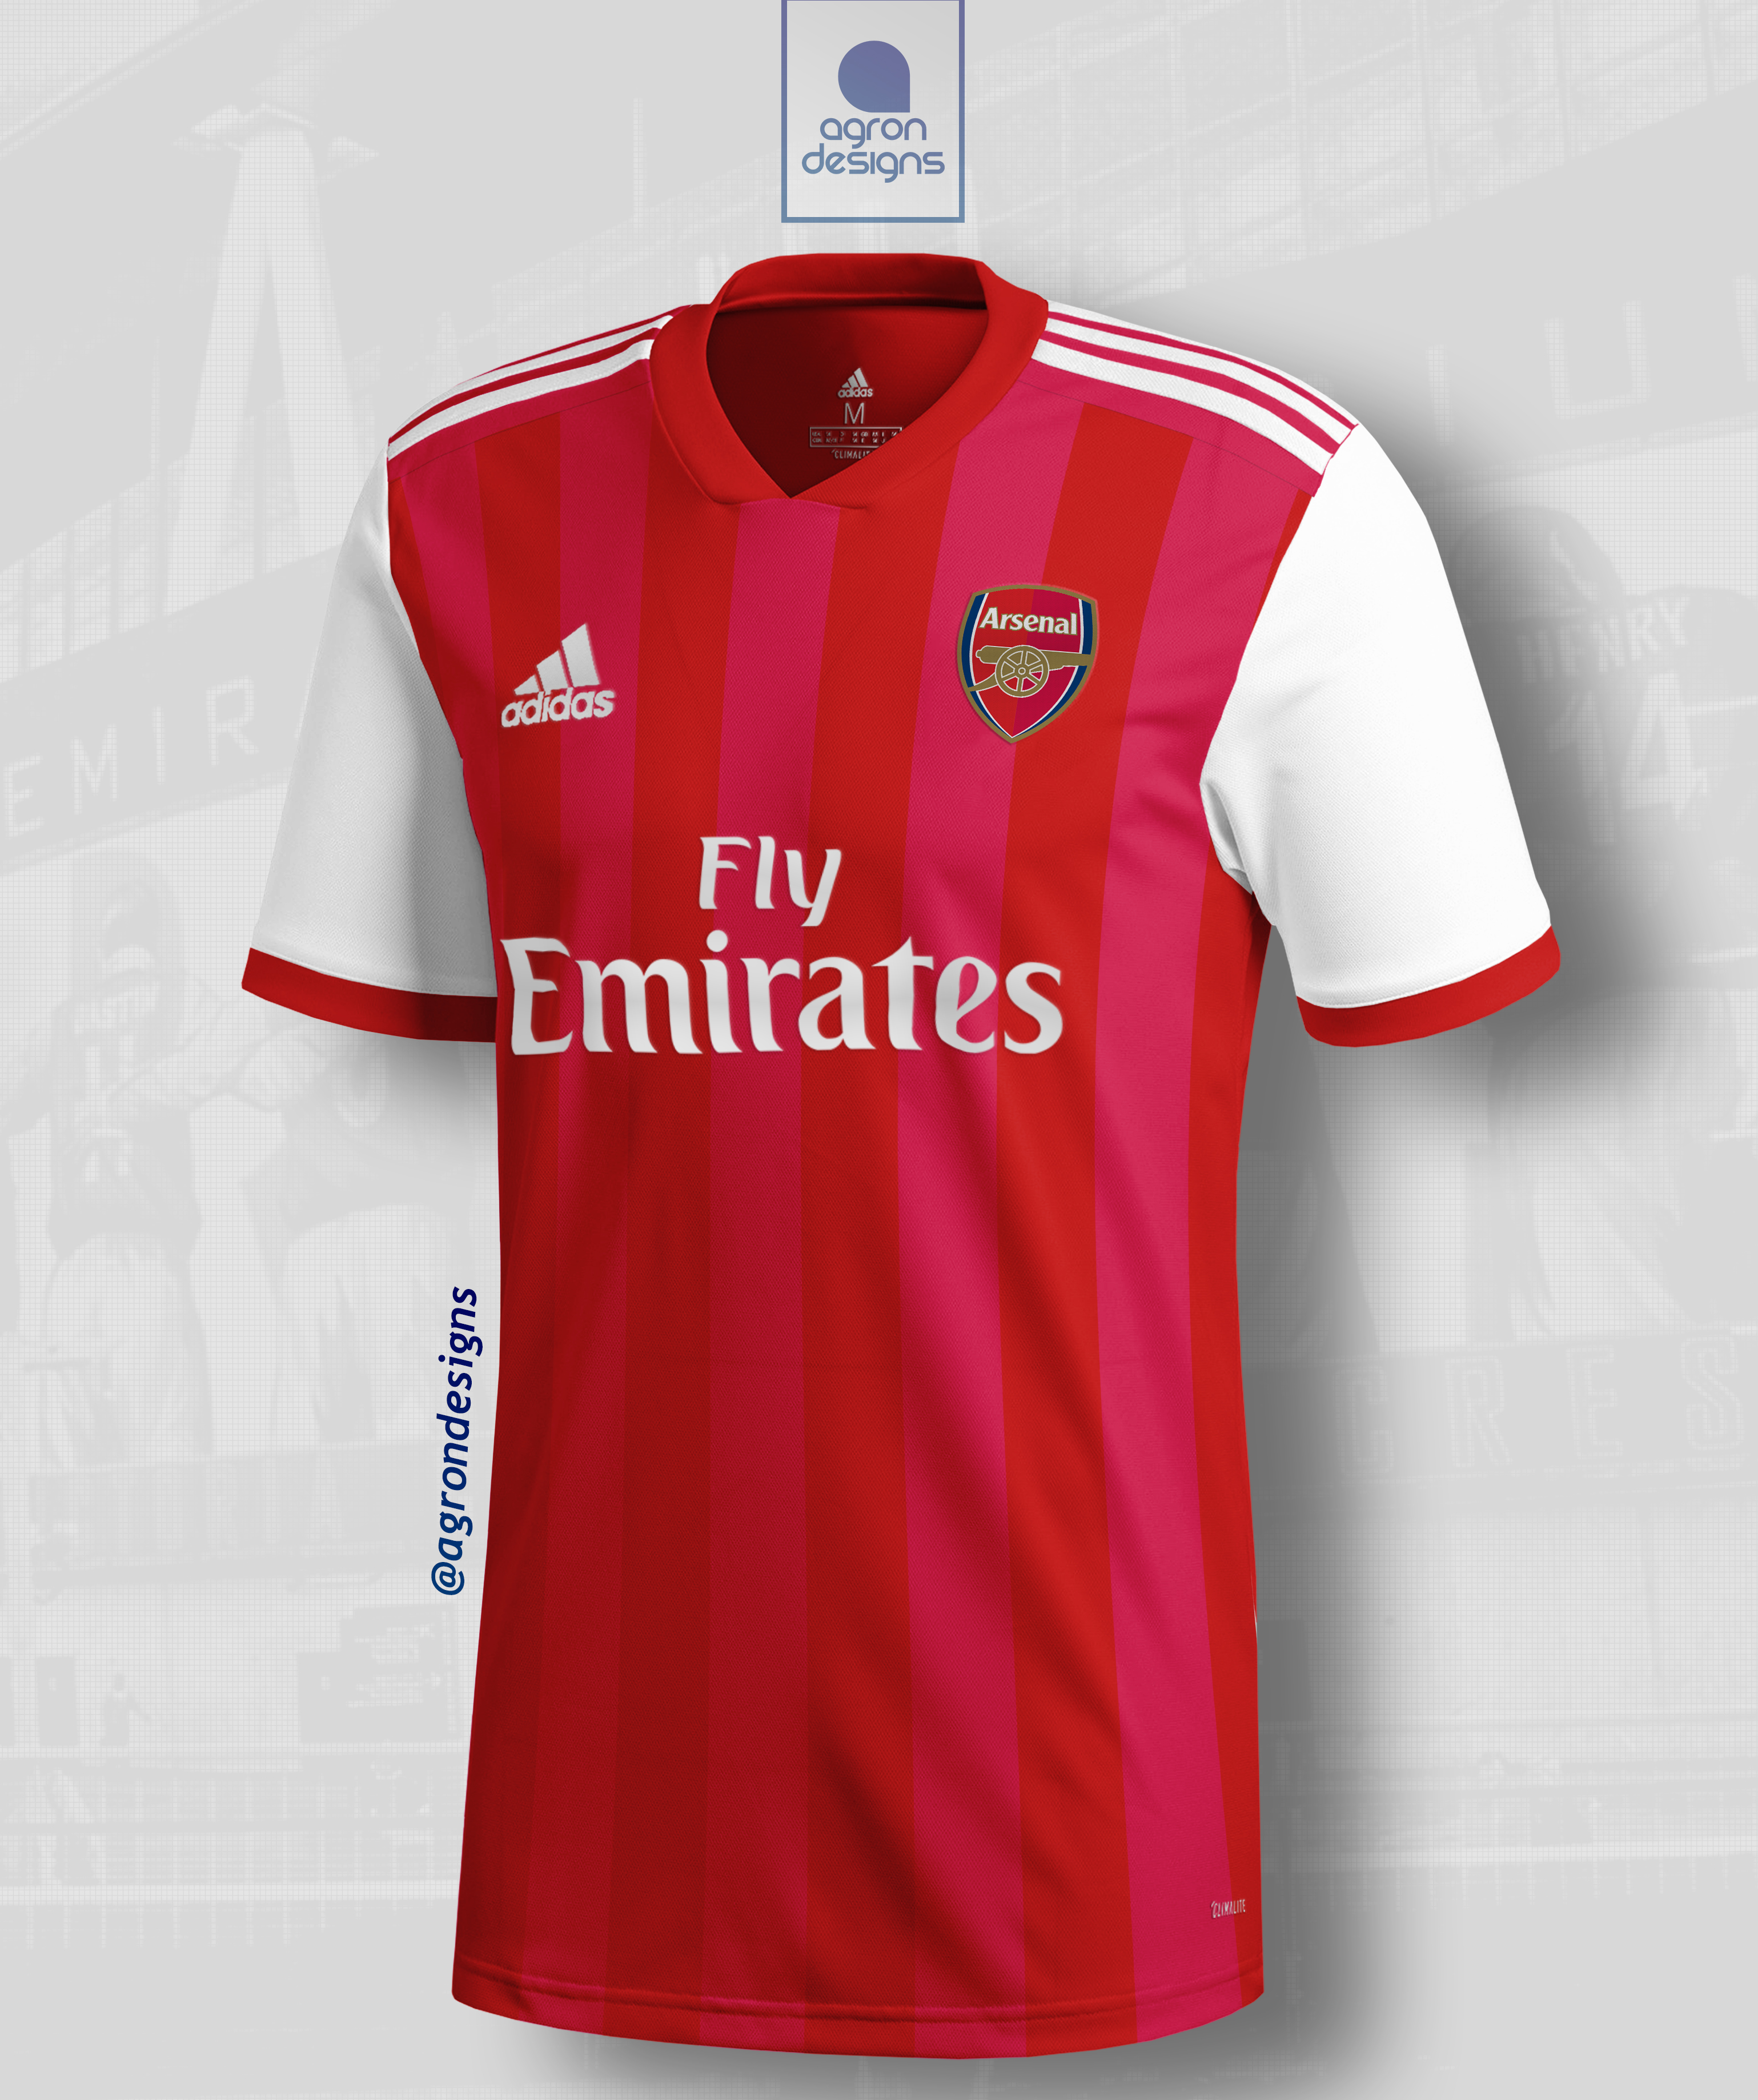 online store 32e02 3a117 Adidas Arsenal Fc Home Kit Concept